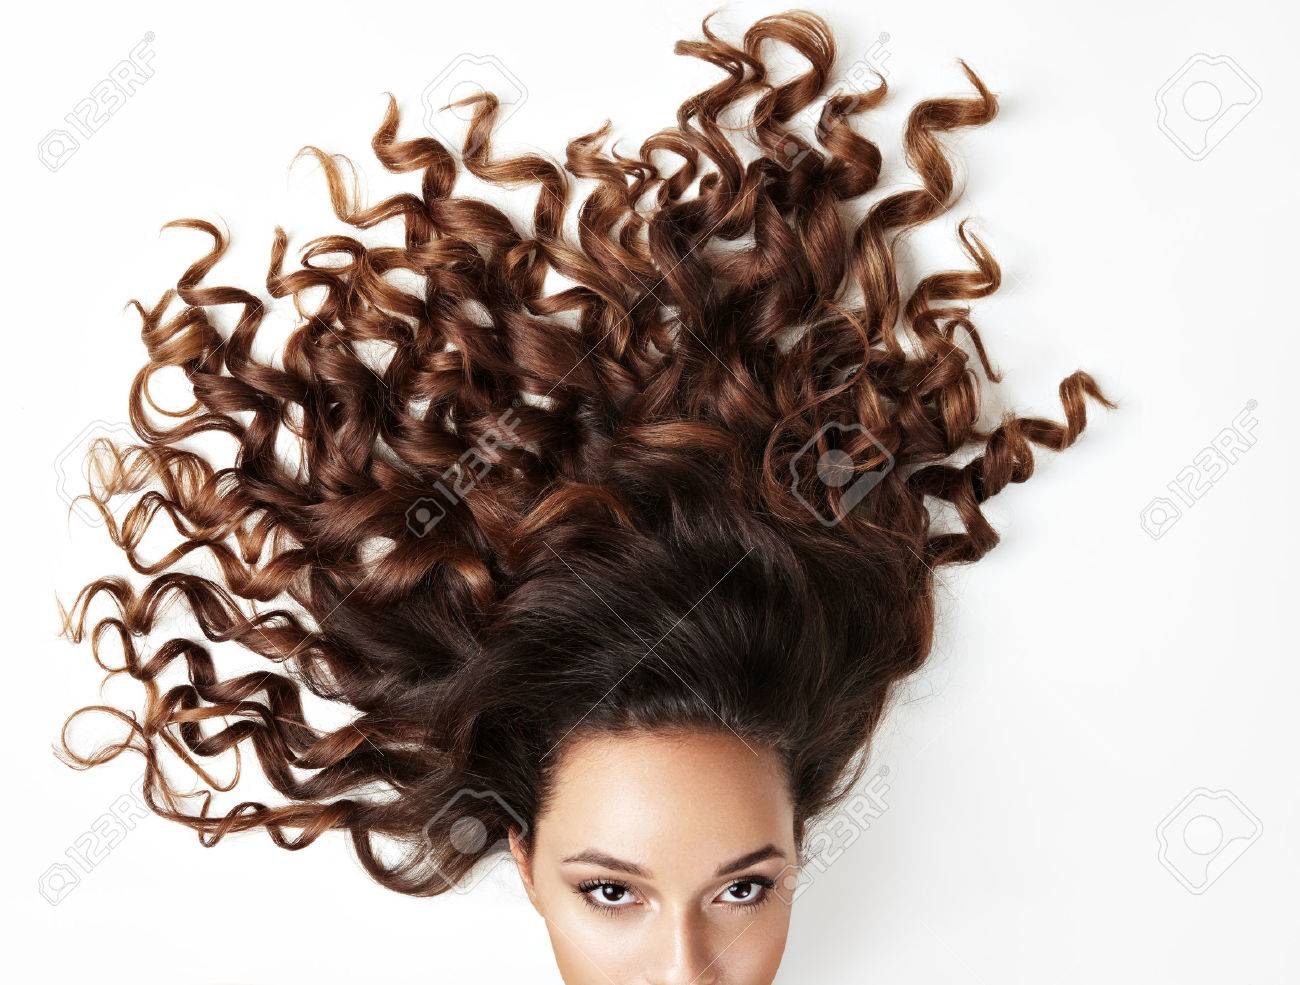 curly hair and part of woman's face, looking at the camera - 45147450